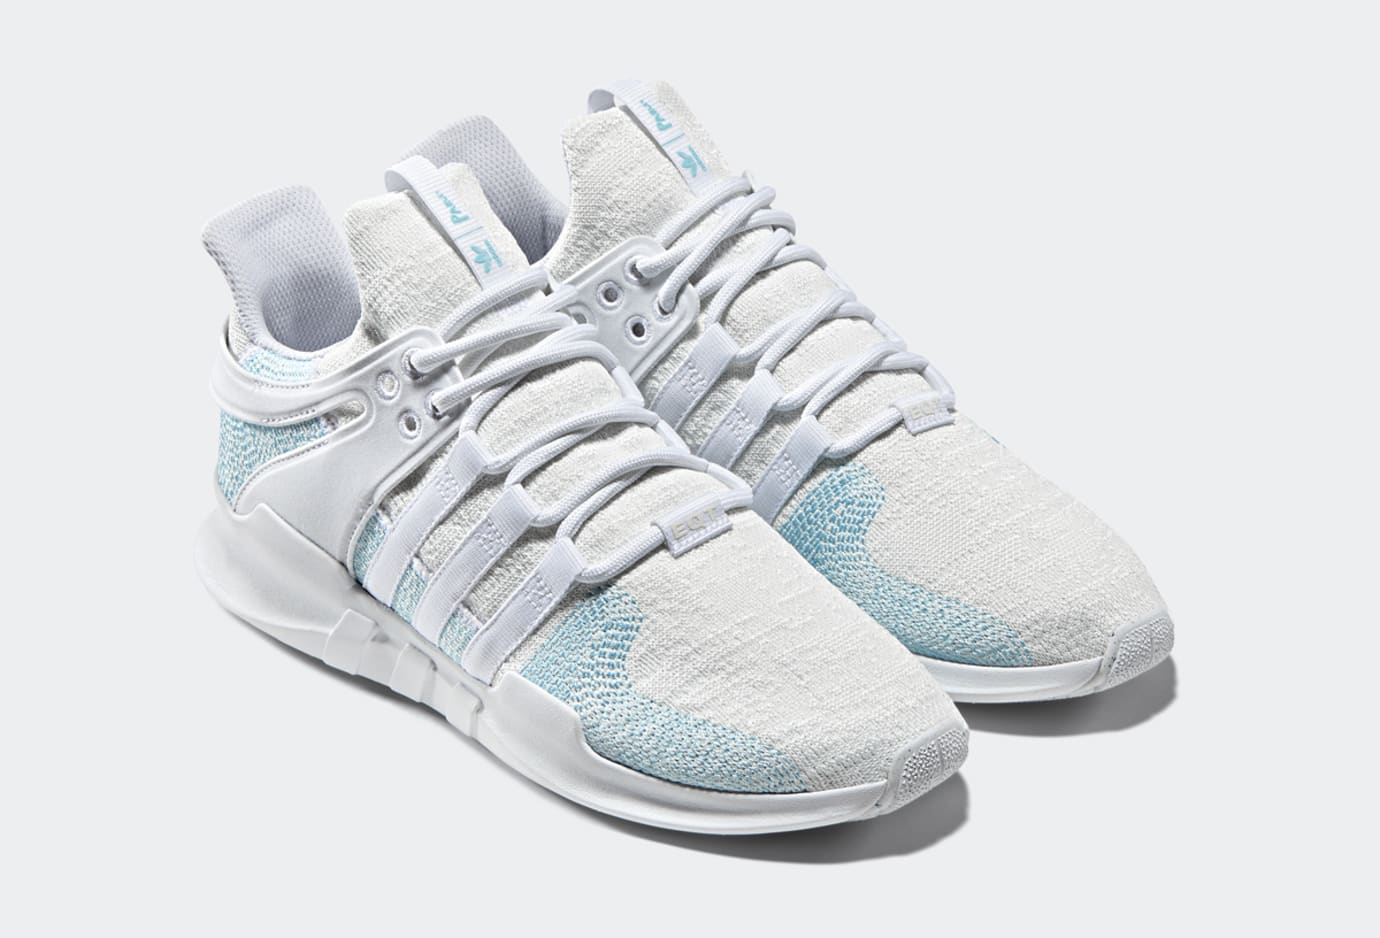 Parley Adidas EQT Support ADV 4